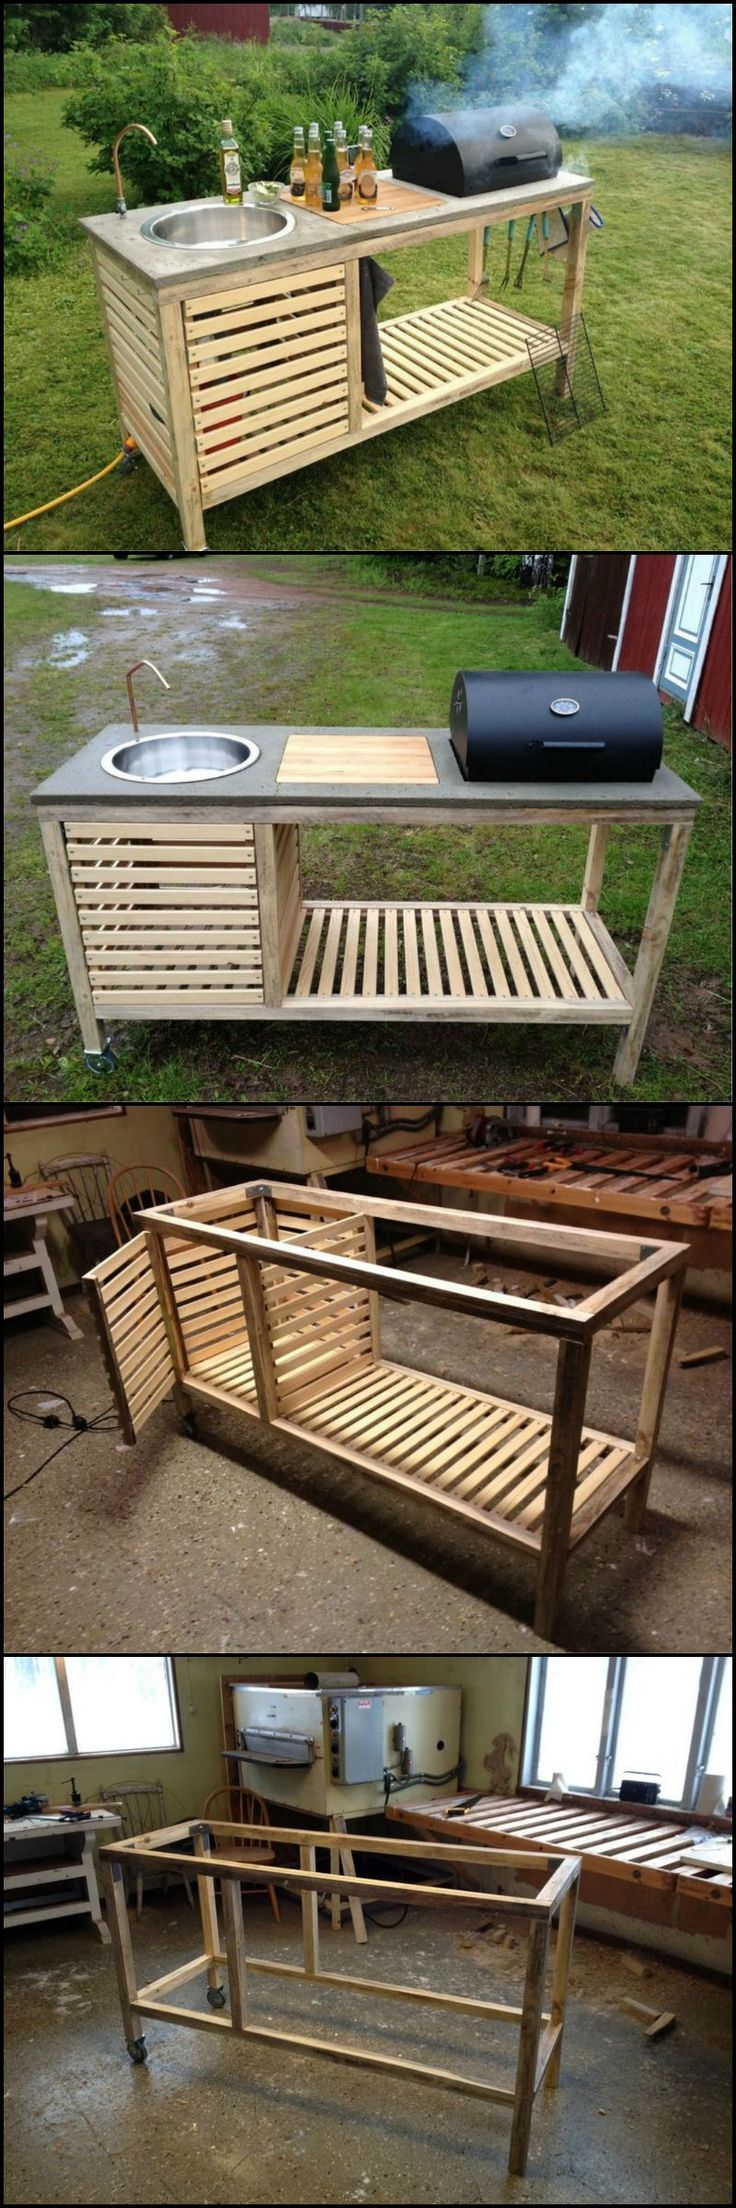 Outdoor kitchens ideas